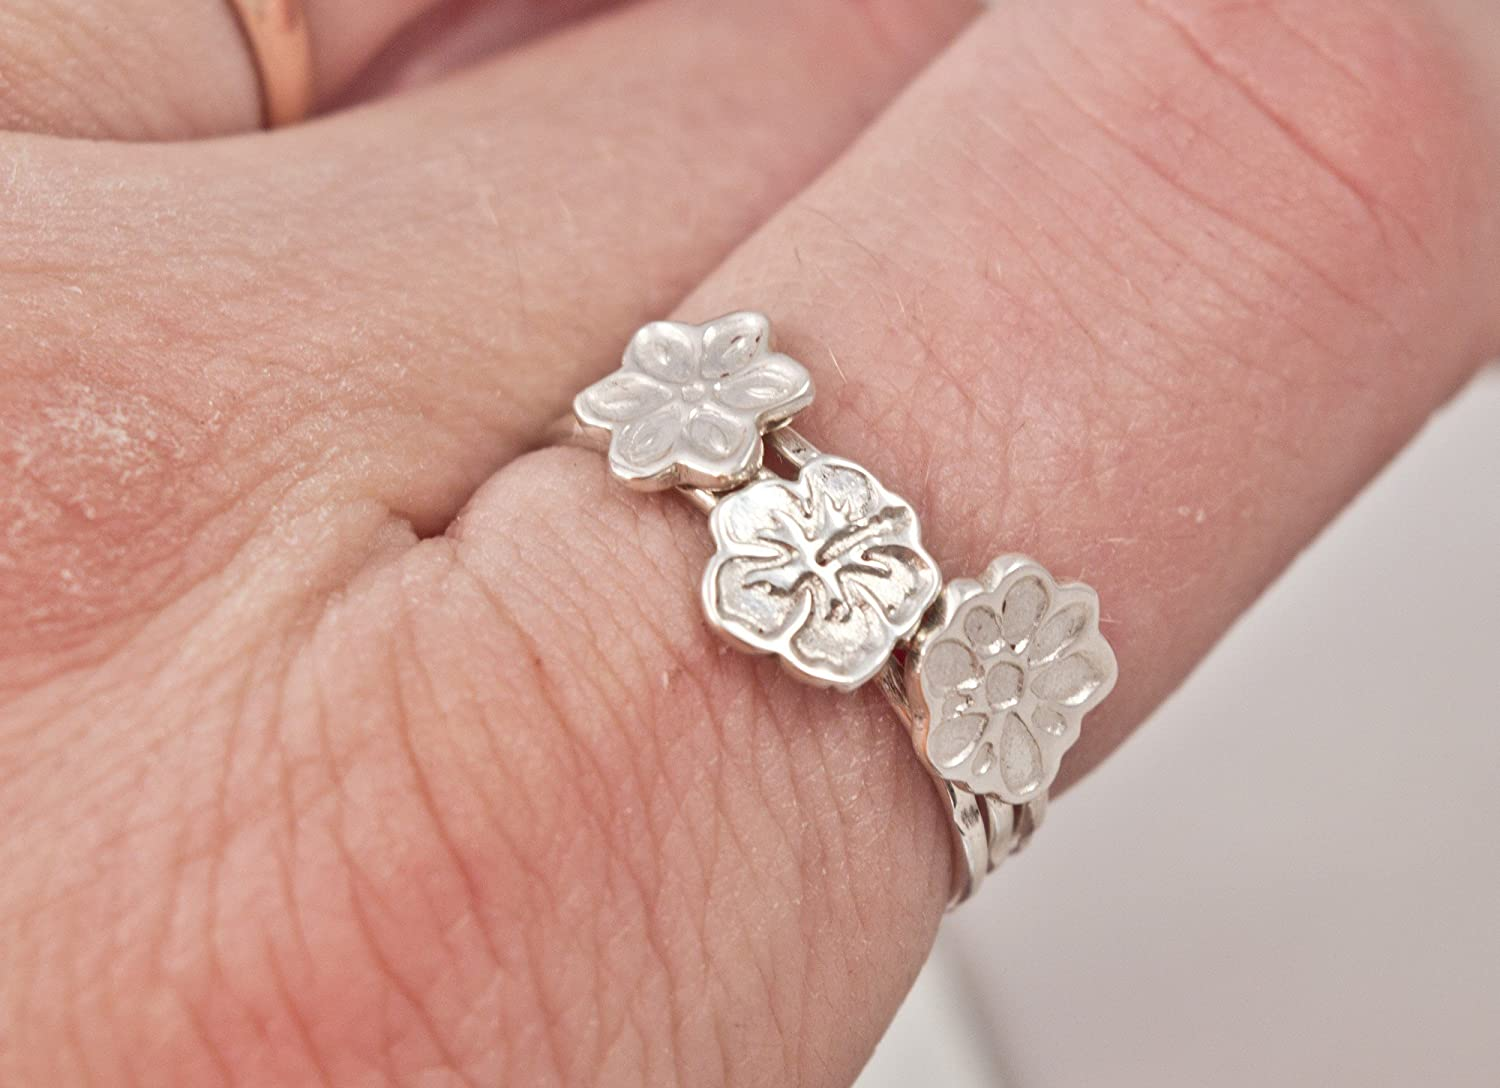 Amazon.com: Hibiscus ring - flower ring - floral ring - sterling ...